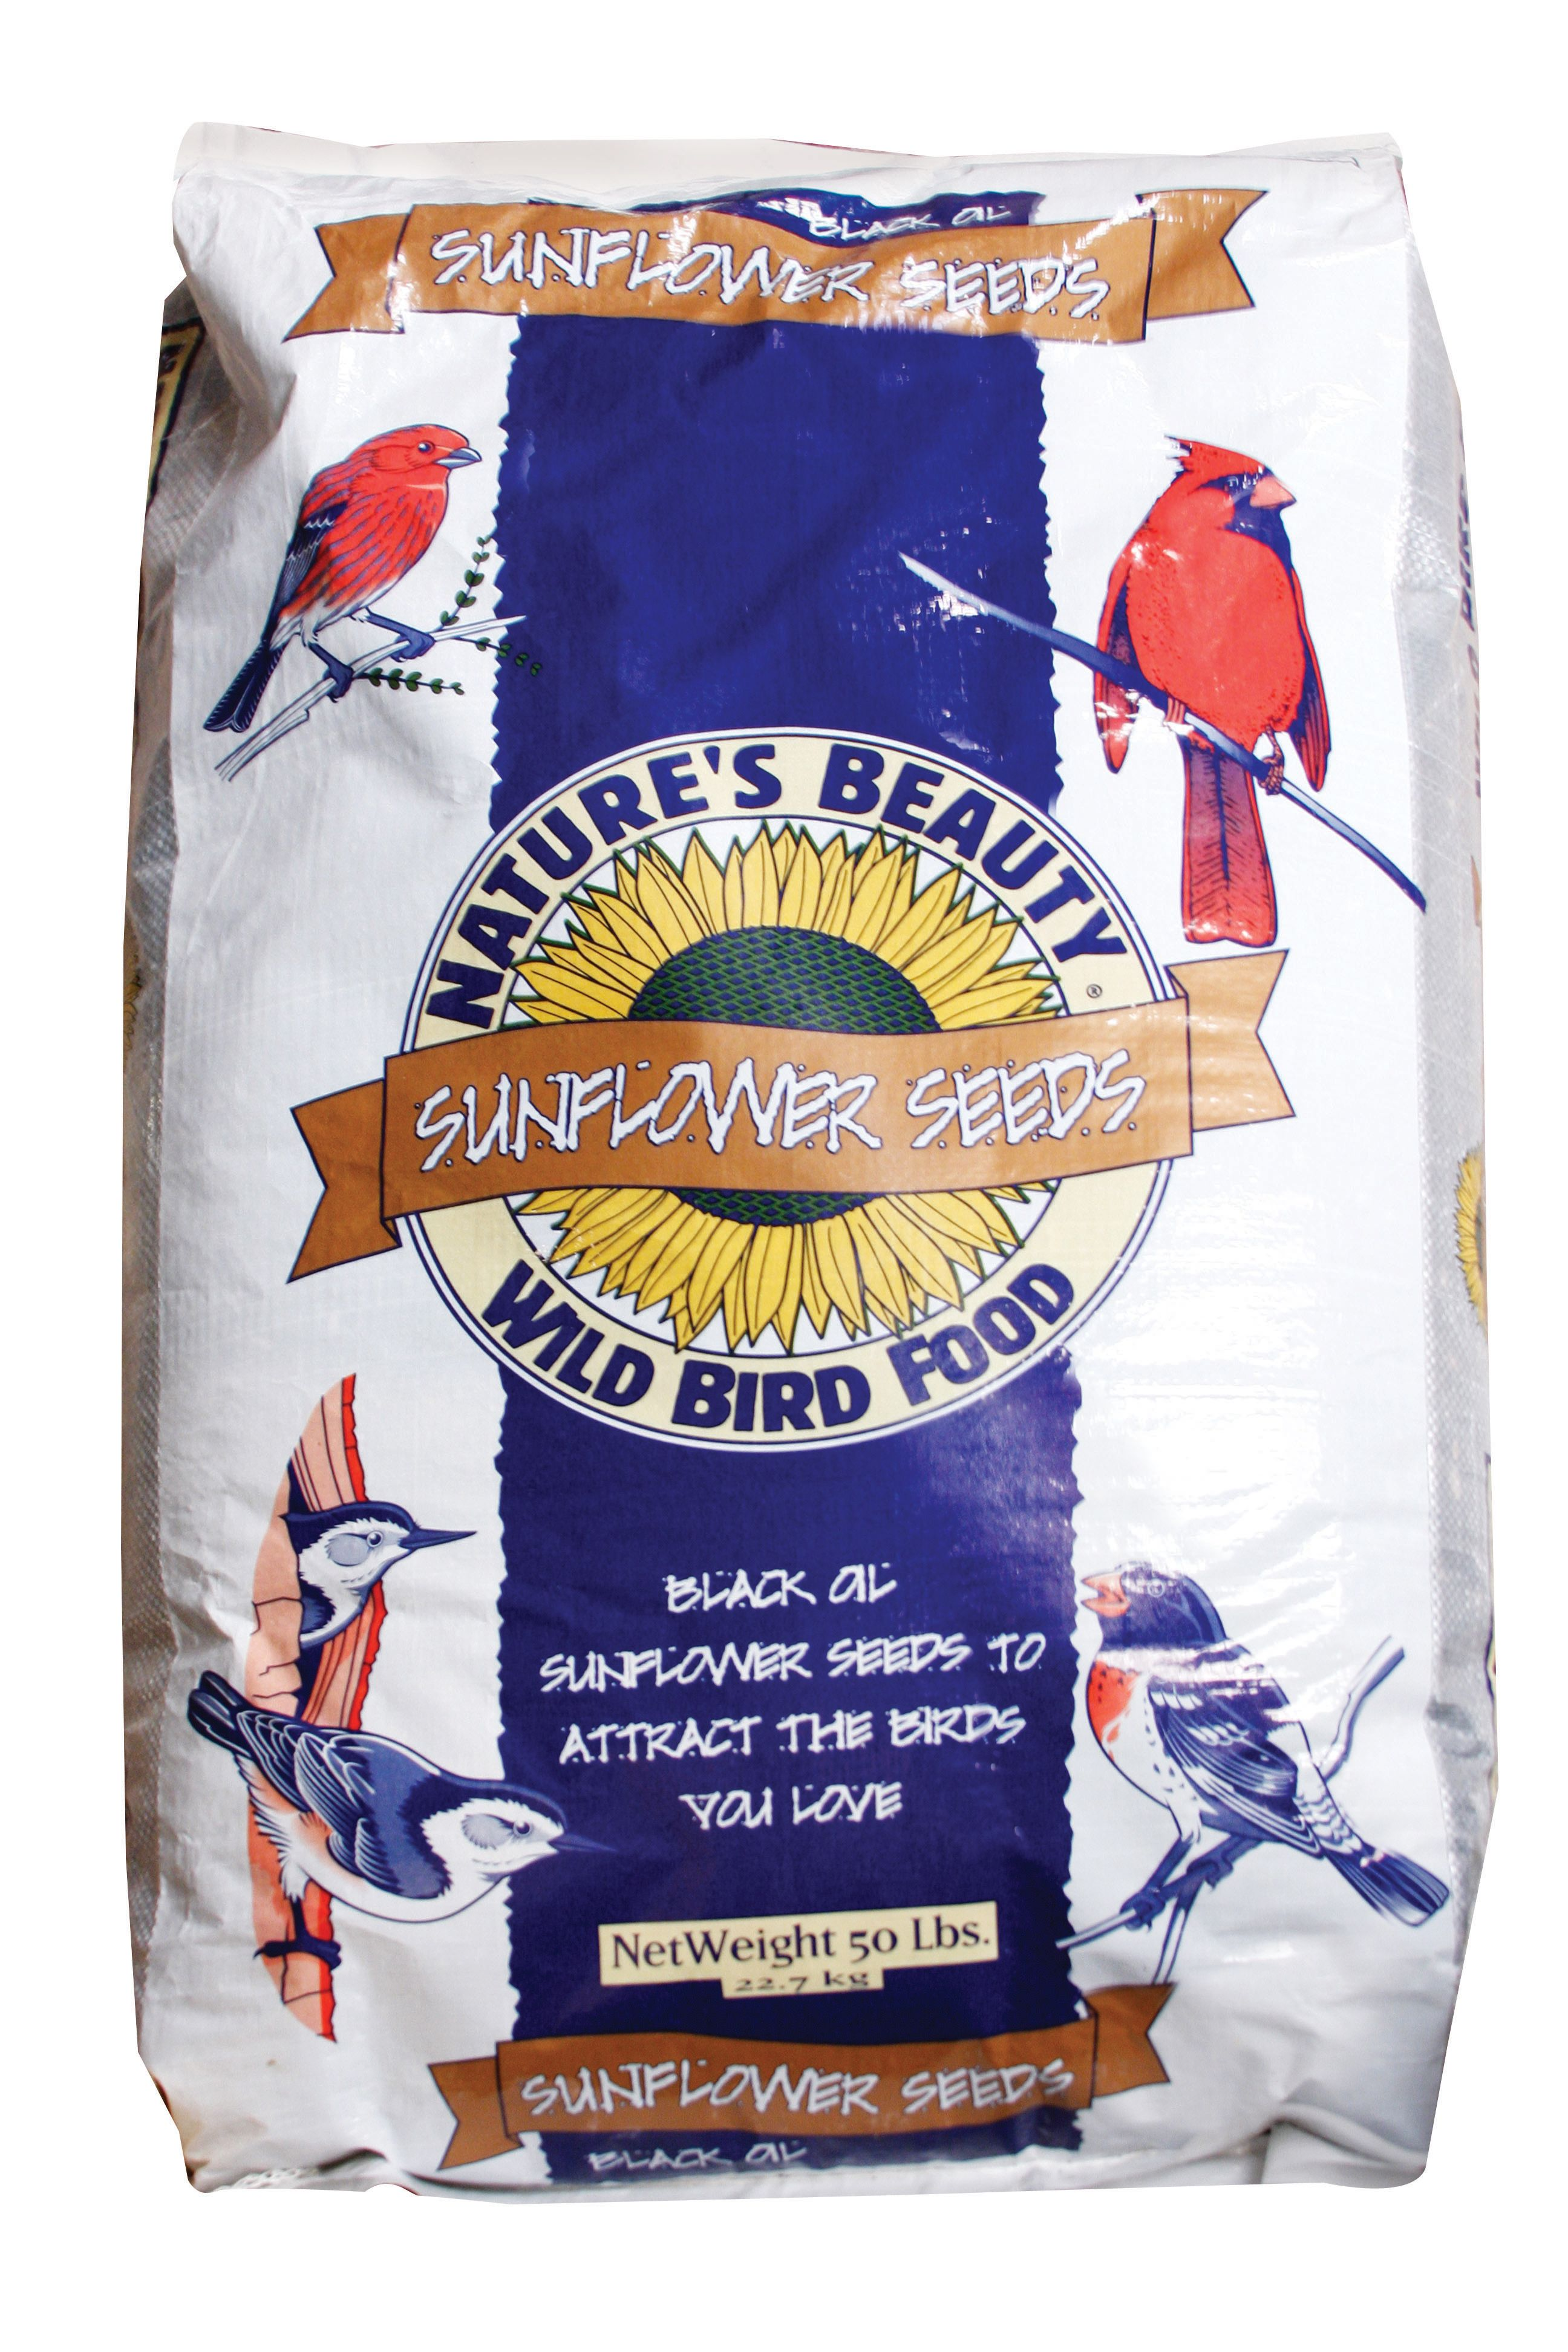 Attract beautiful birds to your backyard by filling up